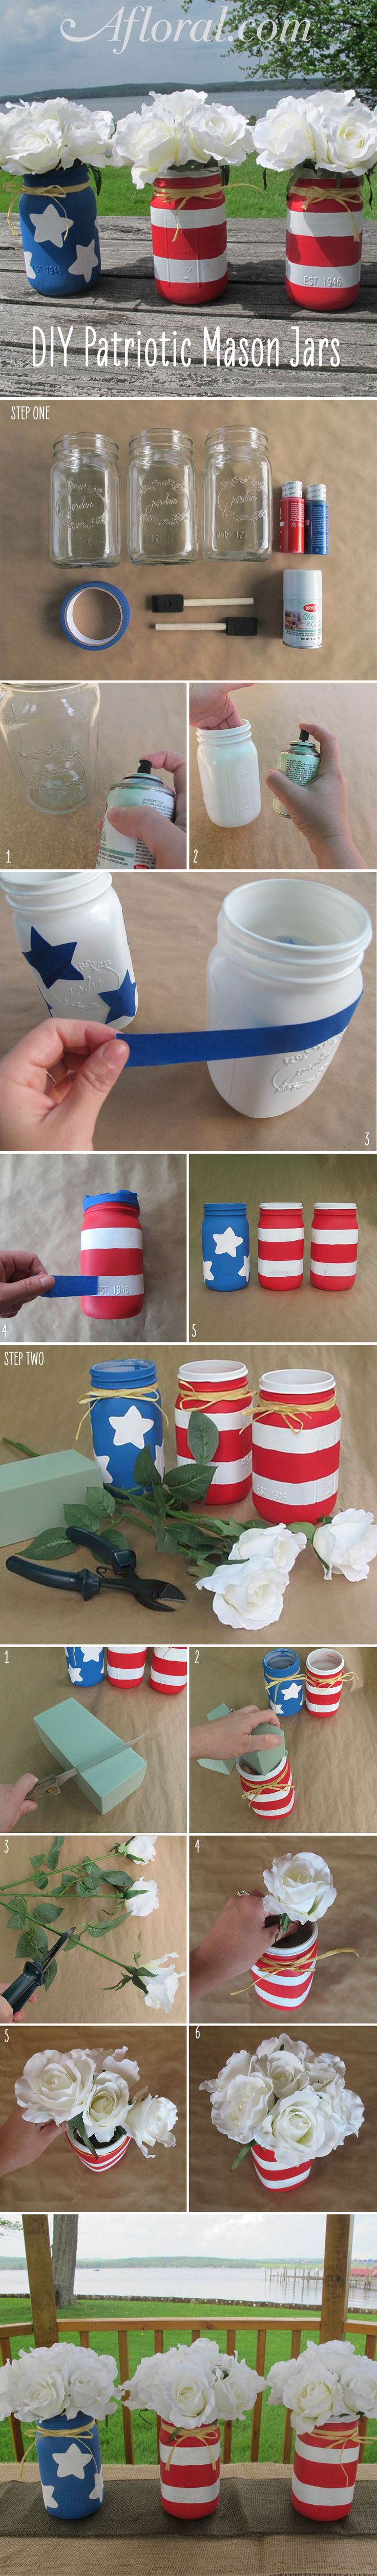 DIY Patriotic Mason Jars. You can DIY these adorable Flag Mason Jars for your 4th of July party!